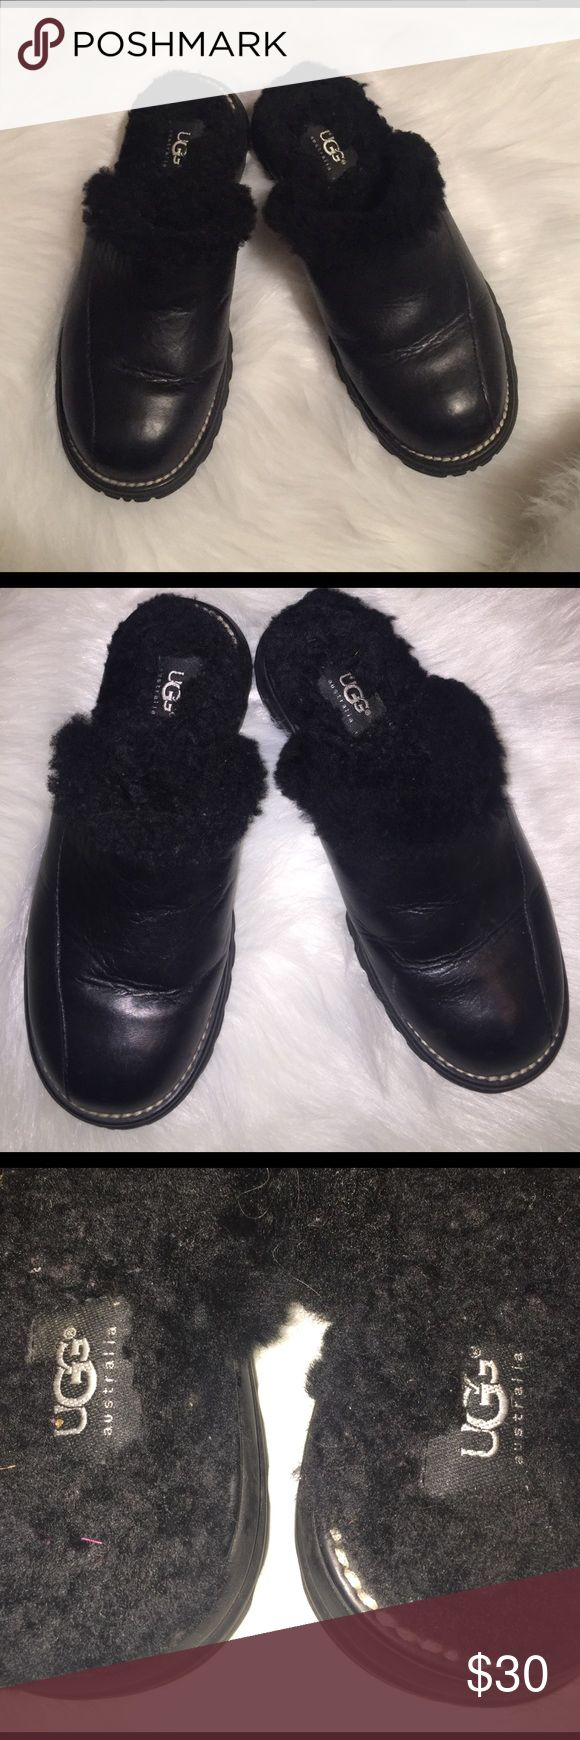 UGG shoes Size 6. Black leather. Black Sherpa lined clogs. Great condition! Very comfortable & warm. UGG Shoes Mules & Clogs